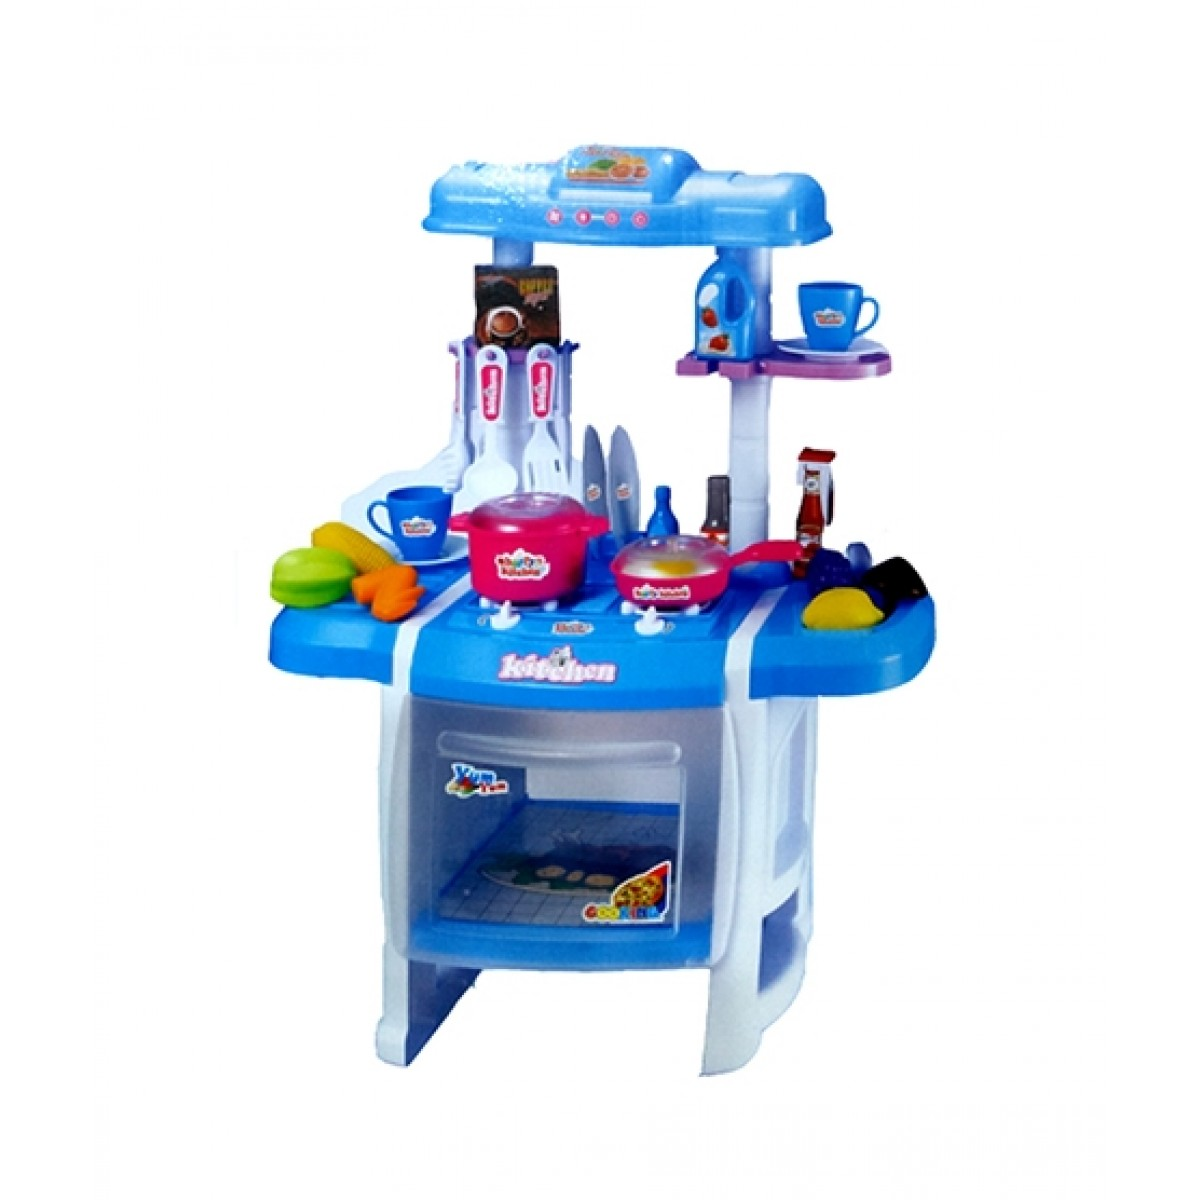 Kitchen Toy Set For Kids Blue Price In Pakistan Buy